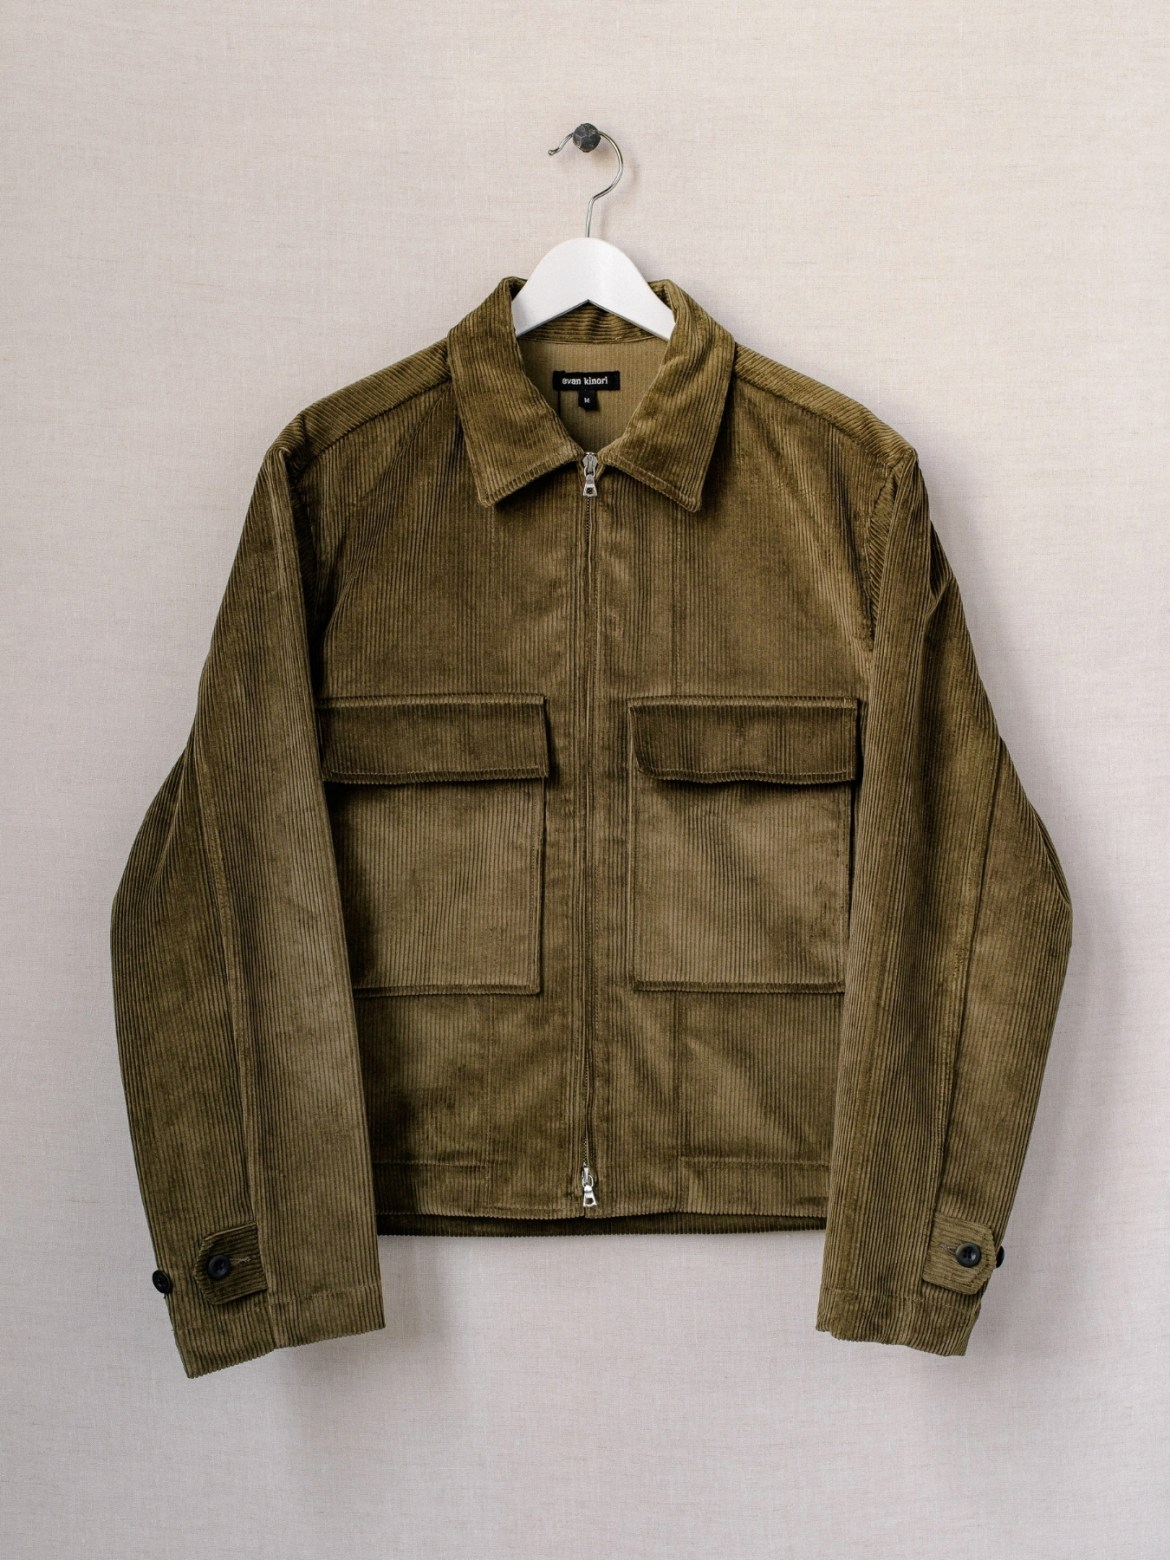 Evan Kinori Zip Jacket - Organic Cotton Corduroy